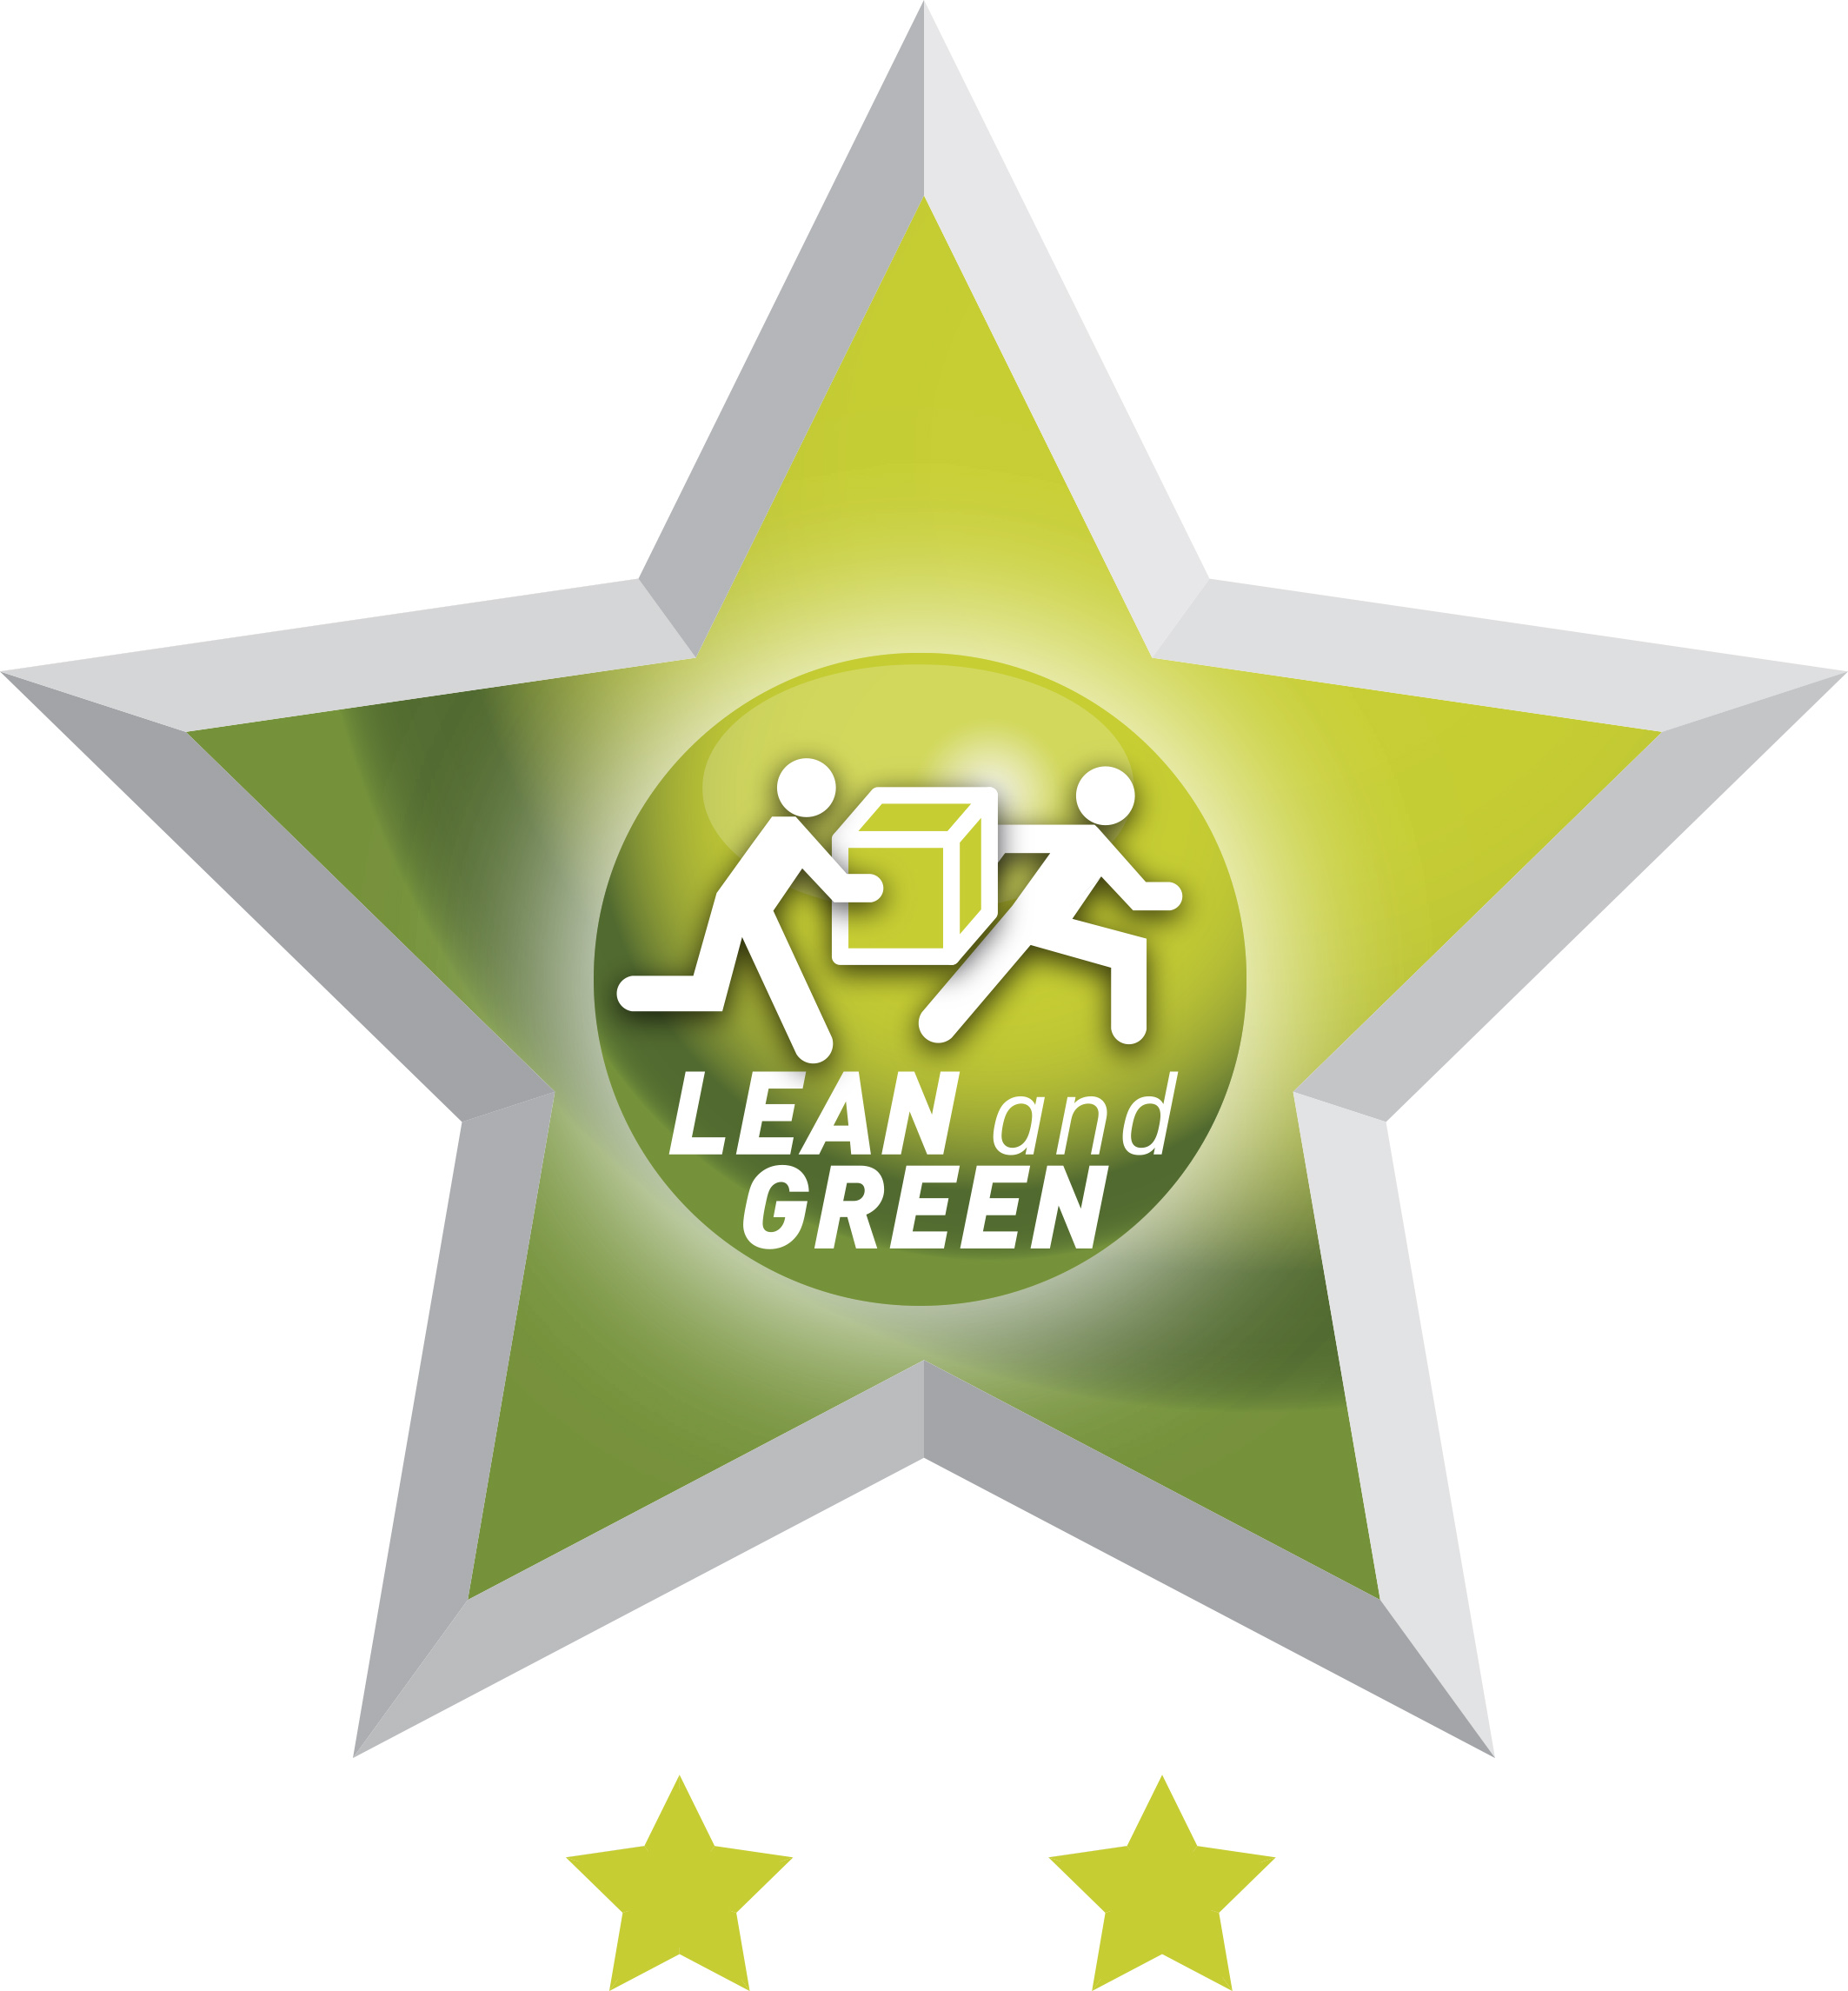 Lean and Green star